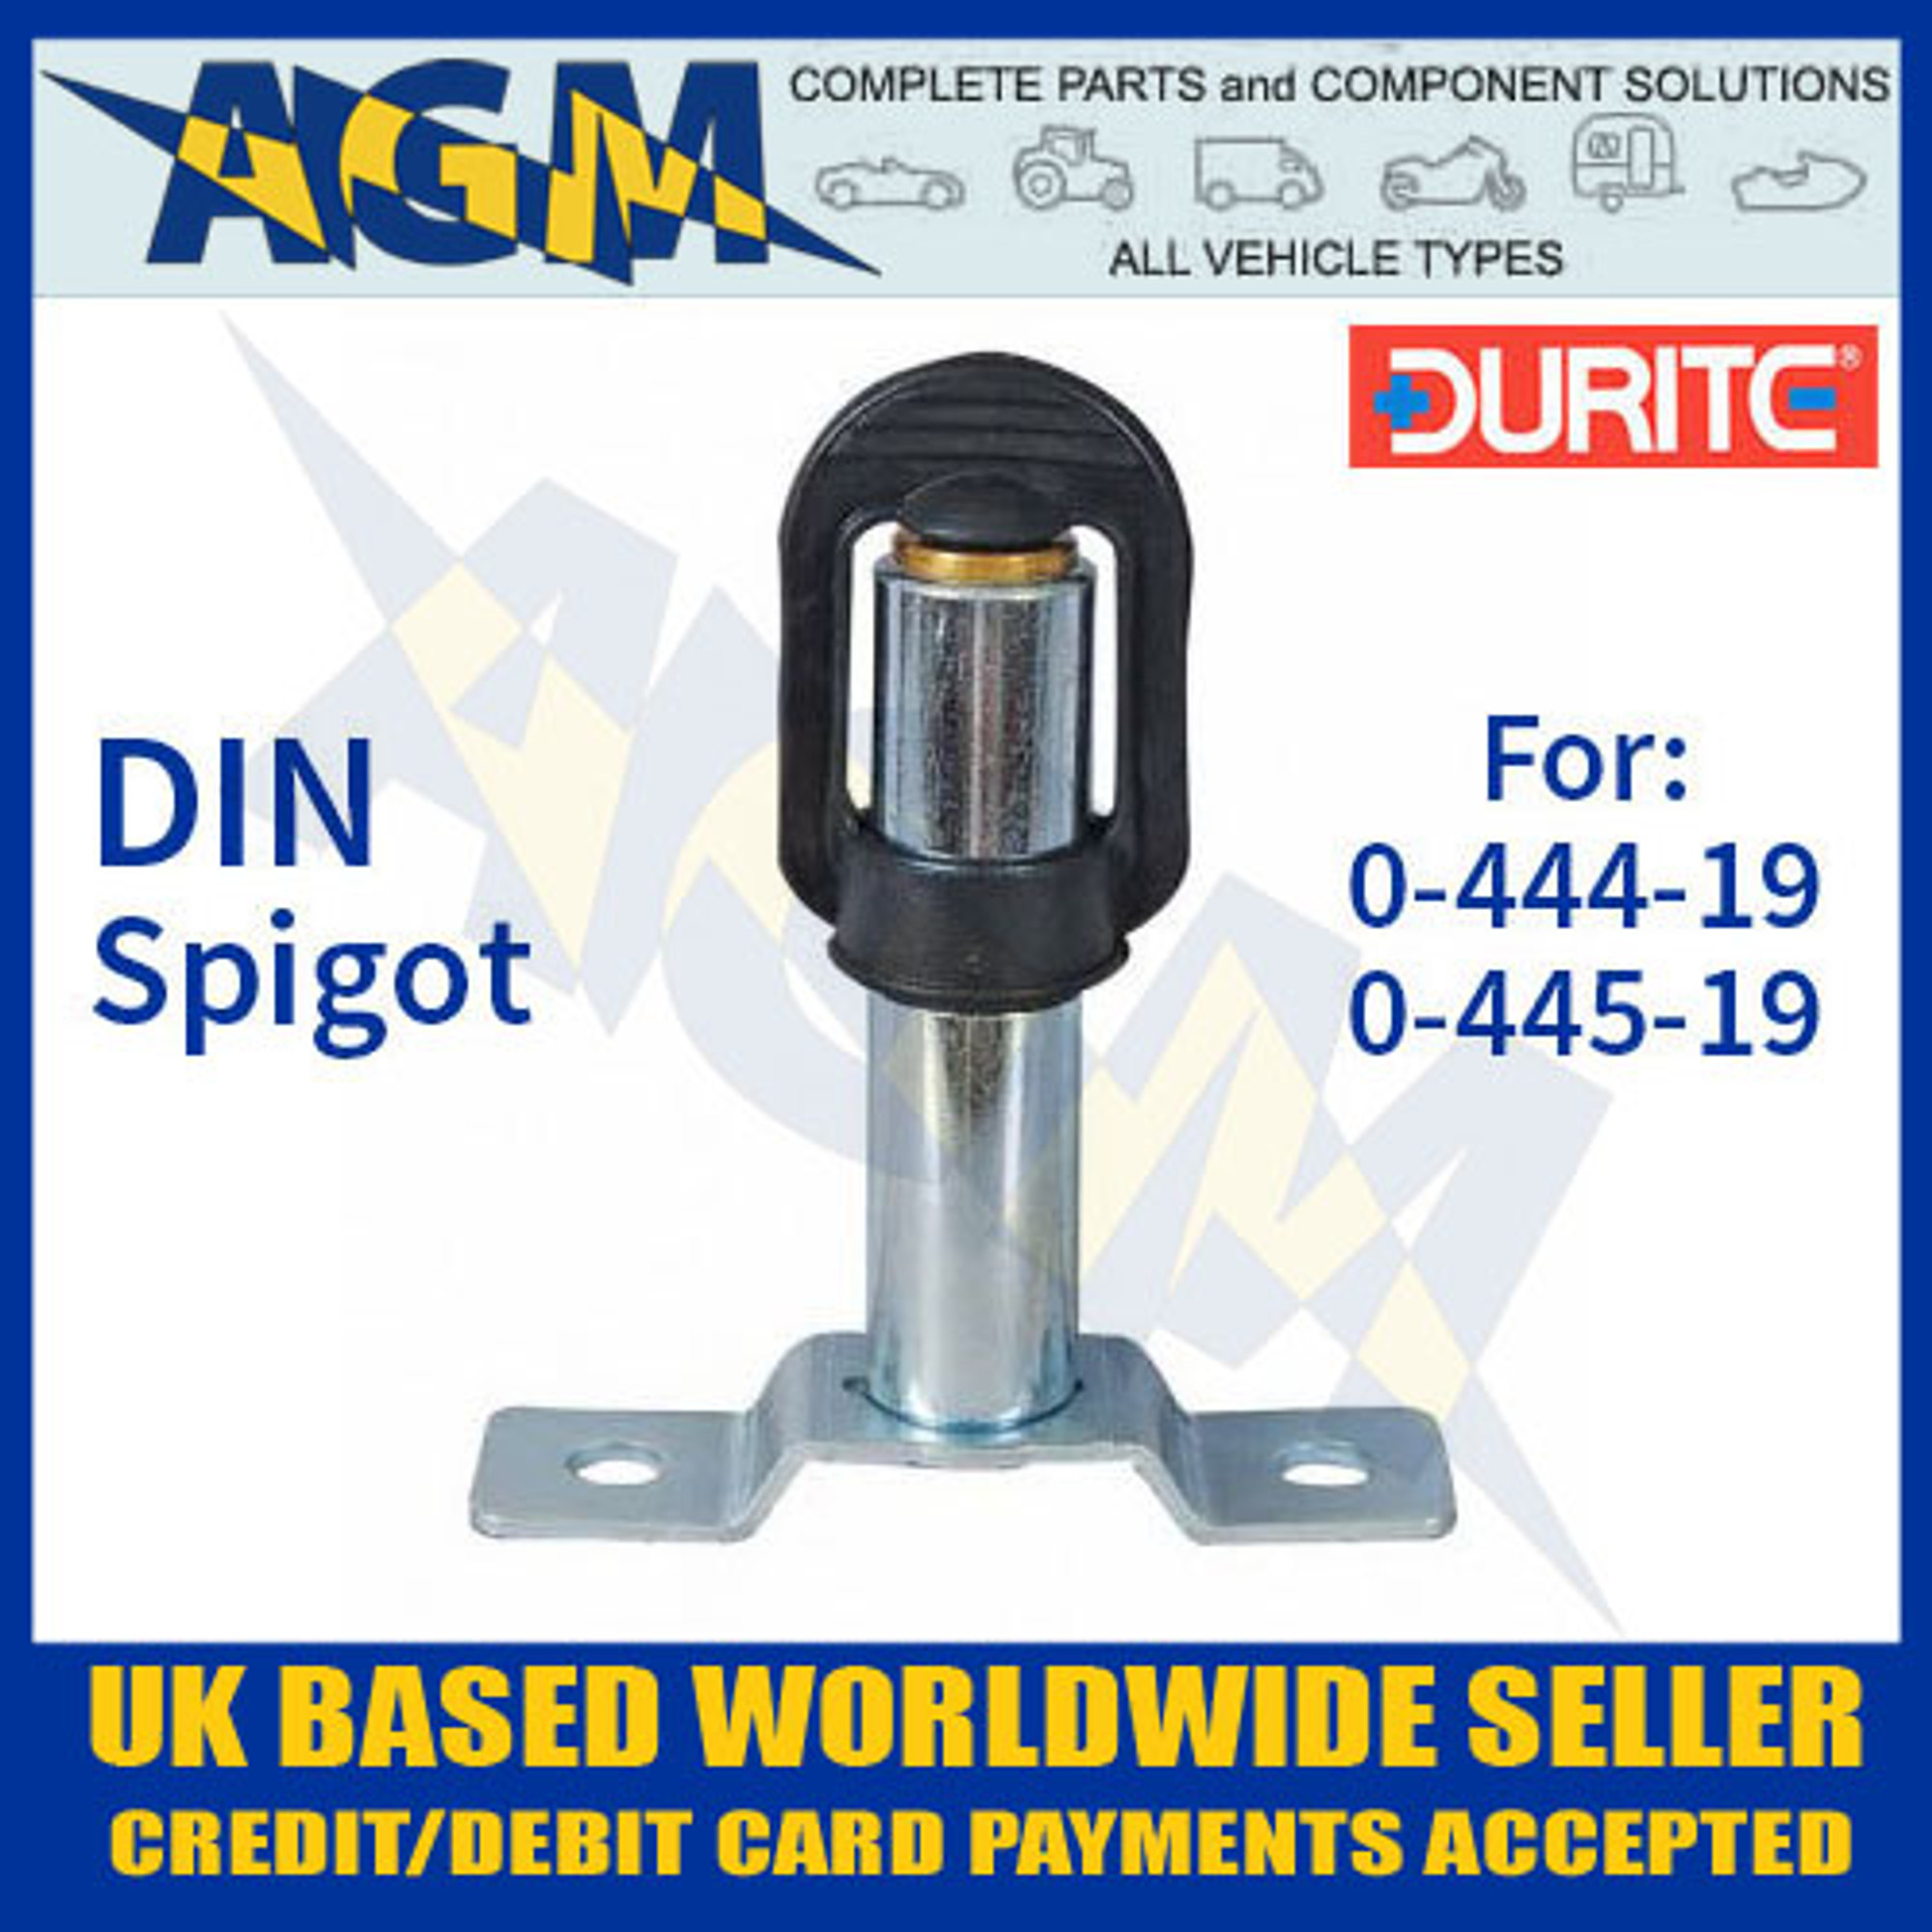 0-445-19 Spigot DIN Mounting for Beacon Durite